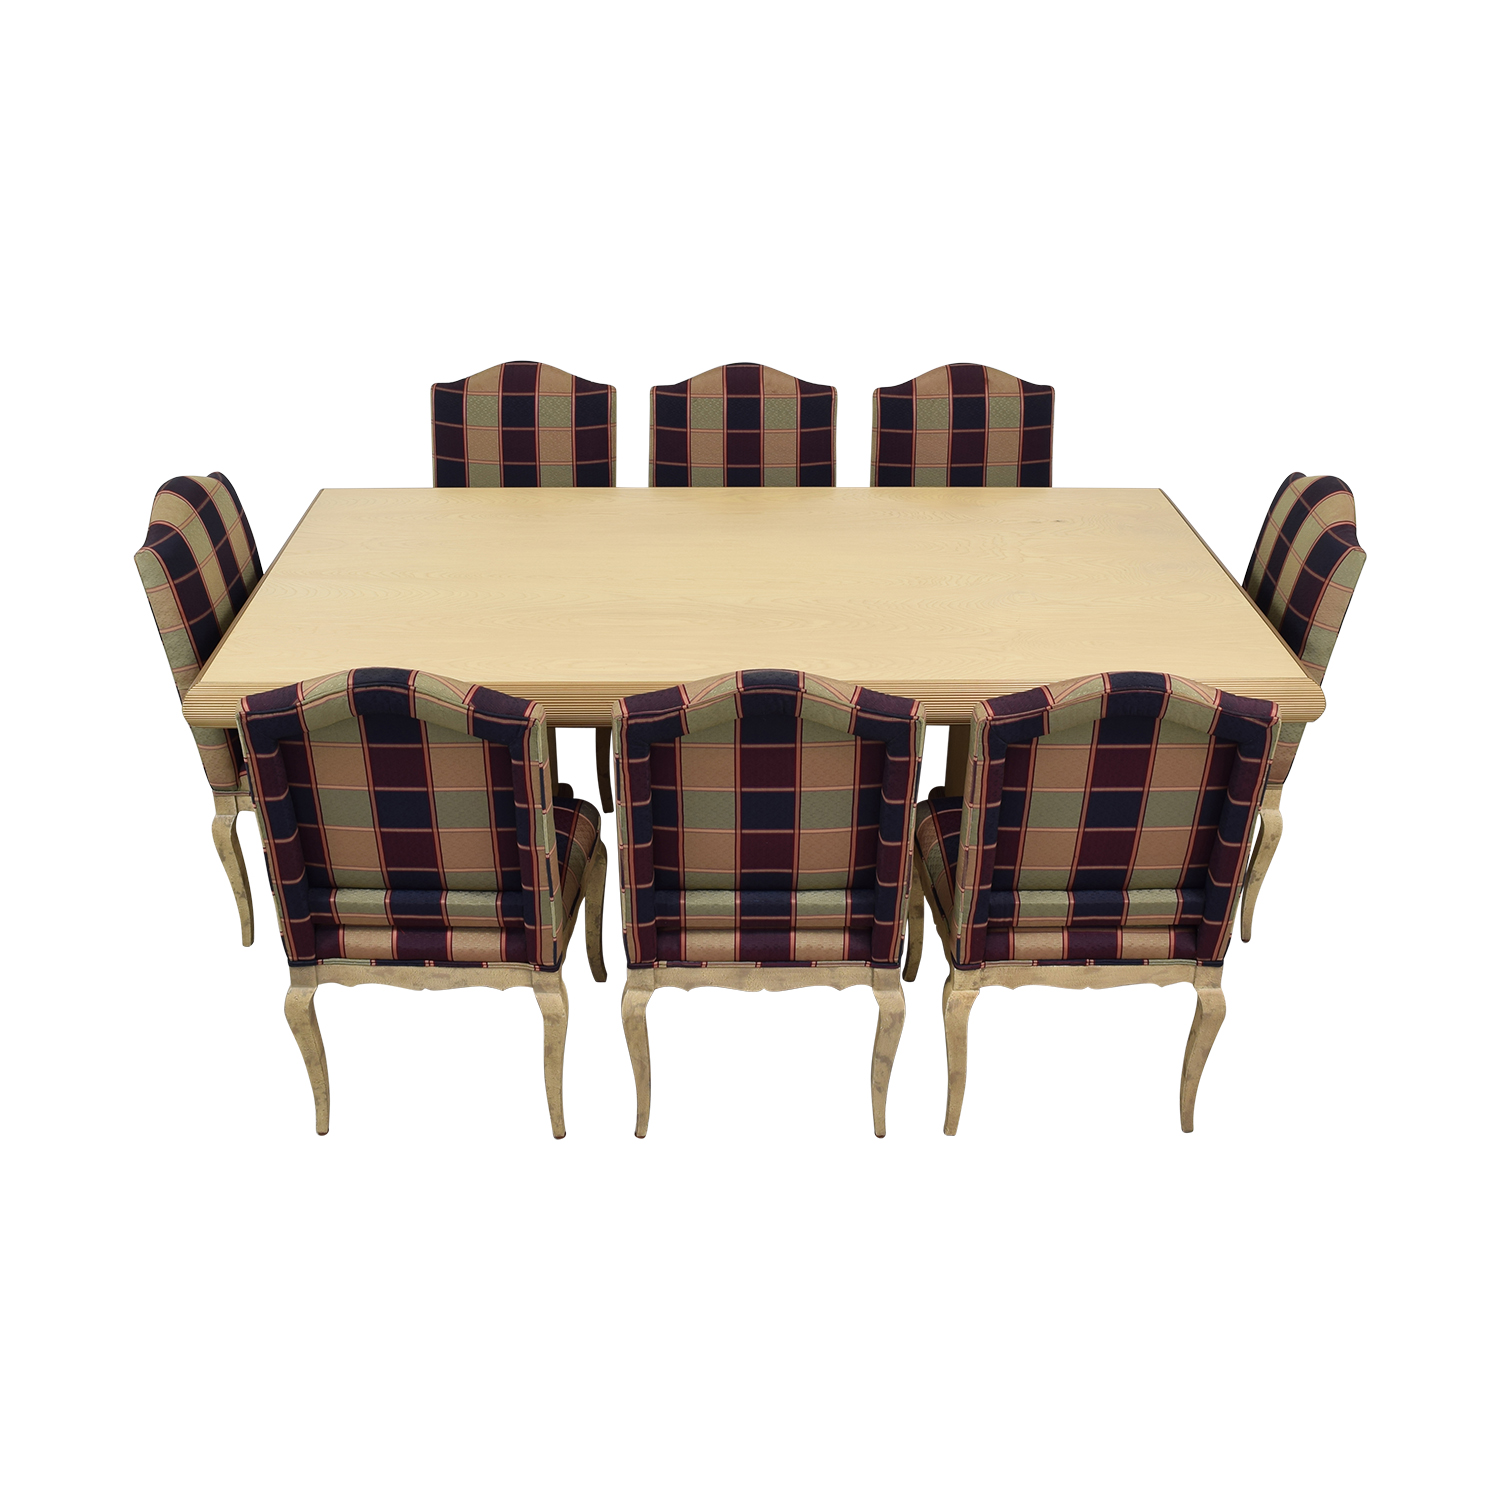 buy Custom Dining Set with Plaid Chairs  Tables